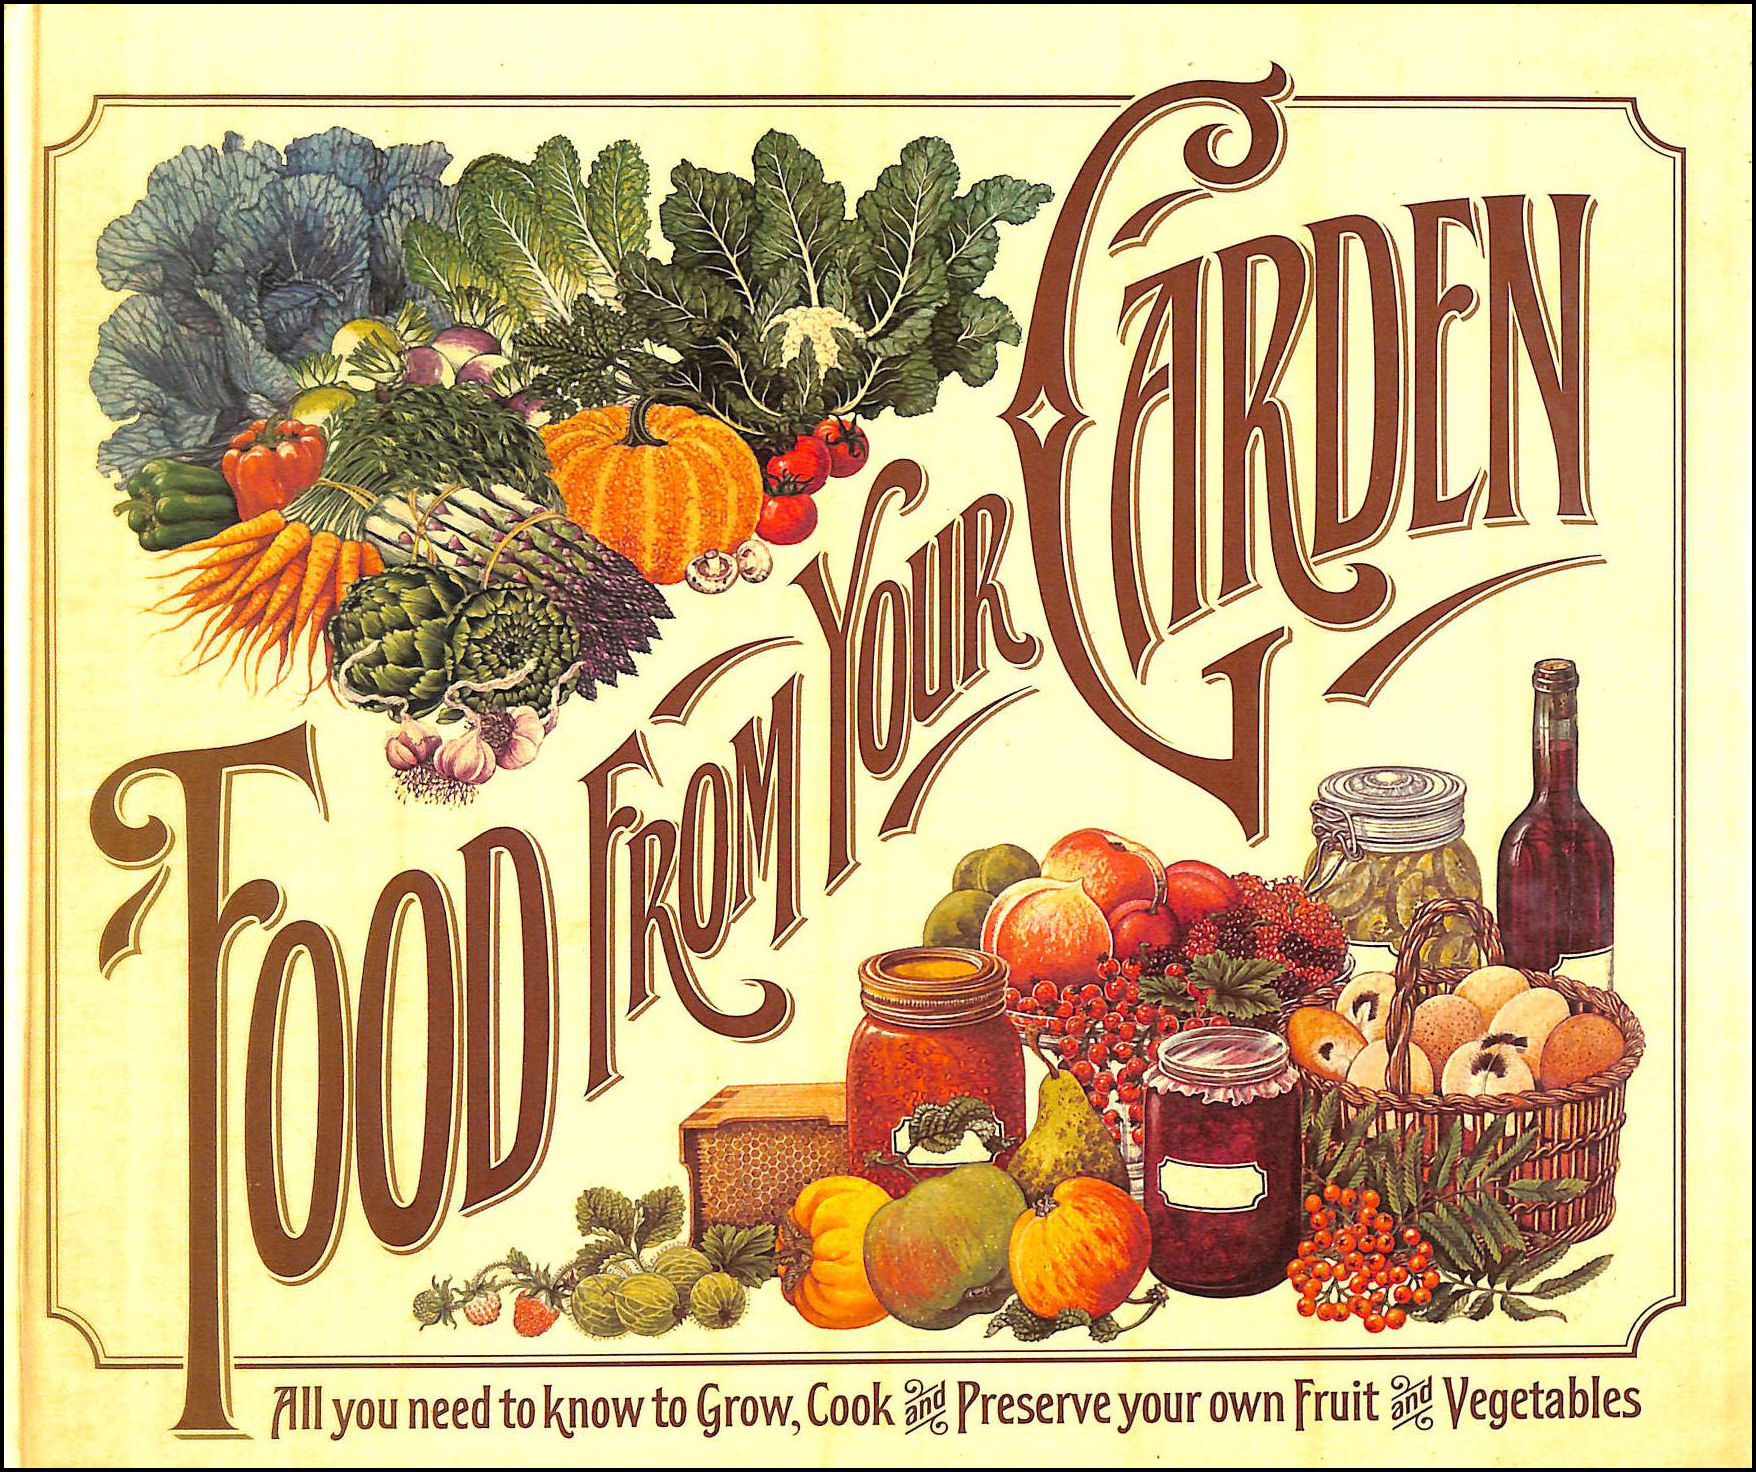 Food from Your Garden ~ All you need to know to Grow, Cook and Preserve your own Fruit and Vegetables, Reader's Digest